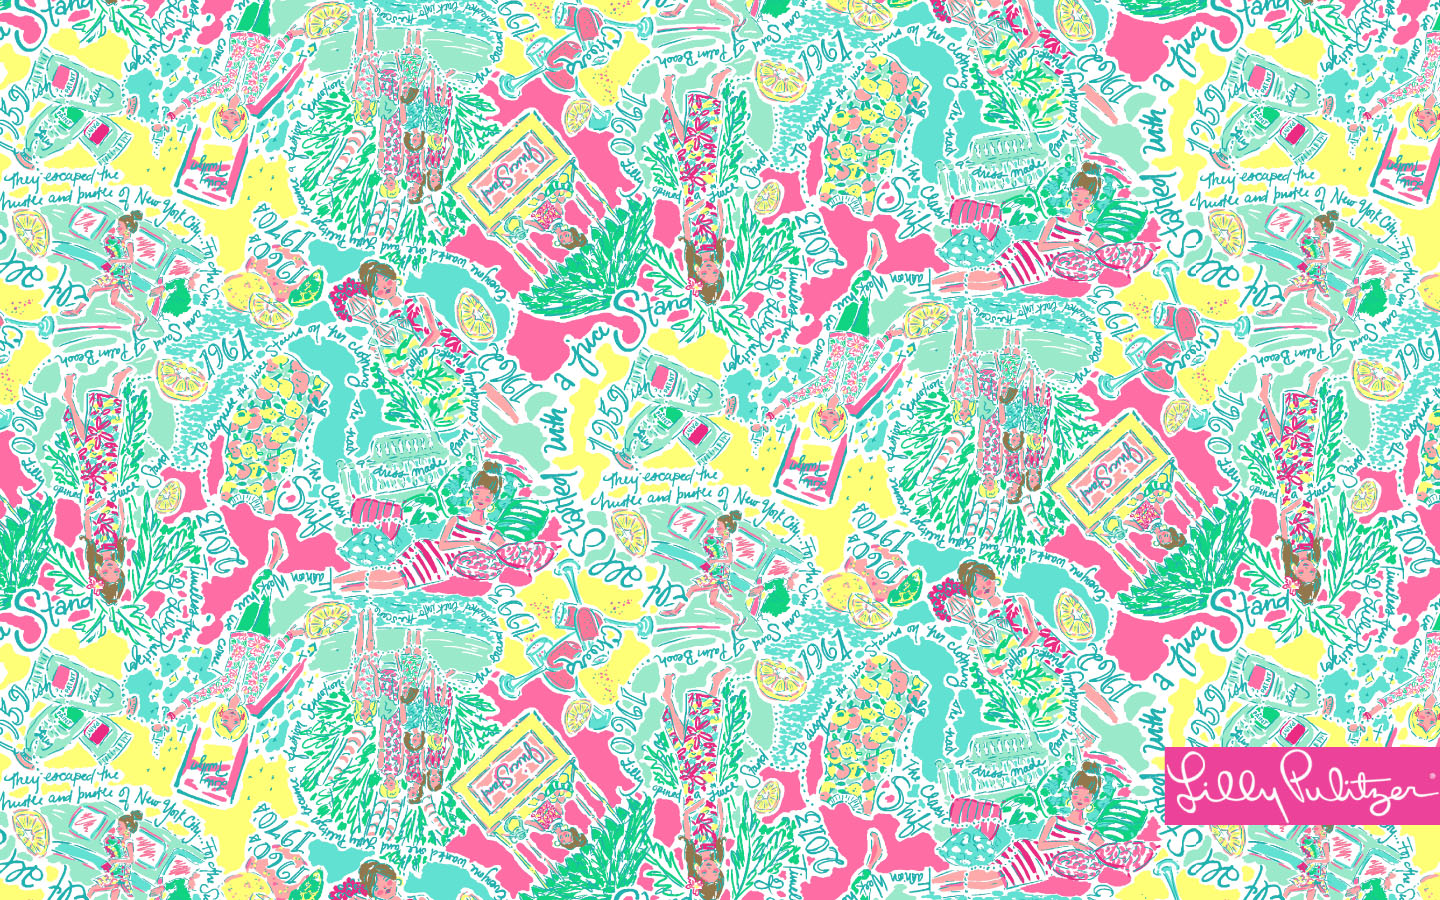 9bbc78144373fa FREE Lilly Pulitzer Desktop Wallpapers Shopaholics Anonymous Blog 1440x900